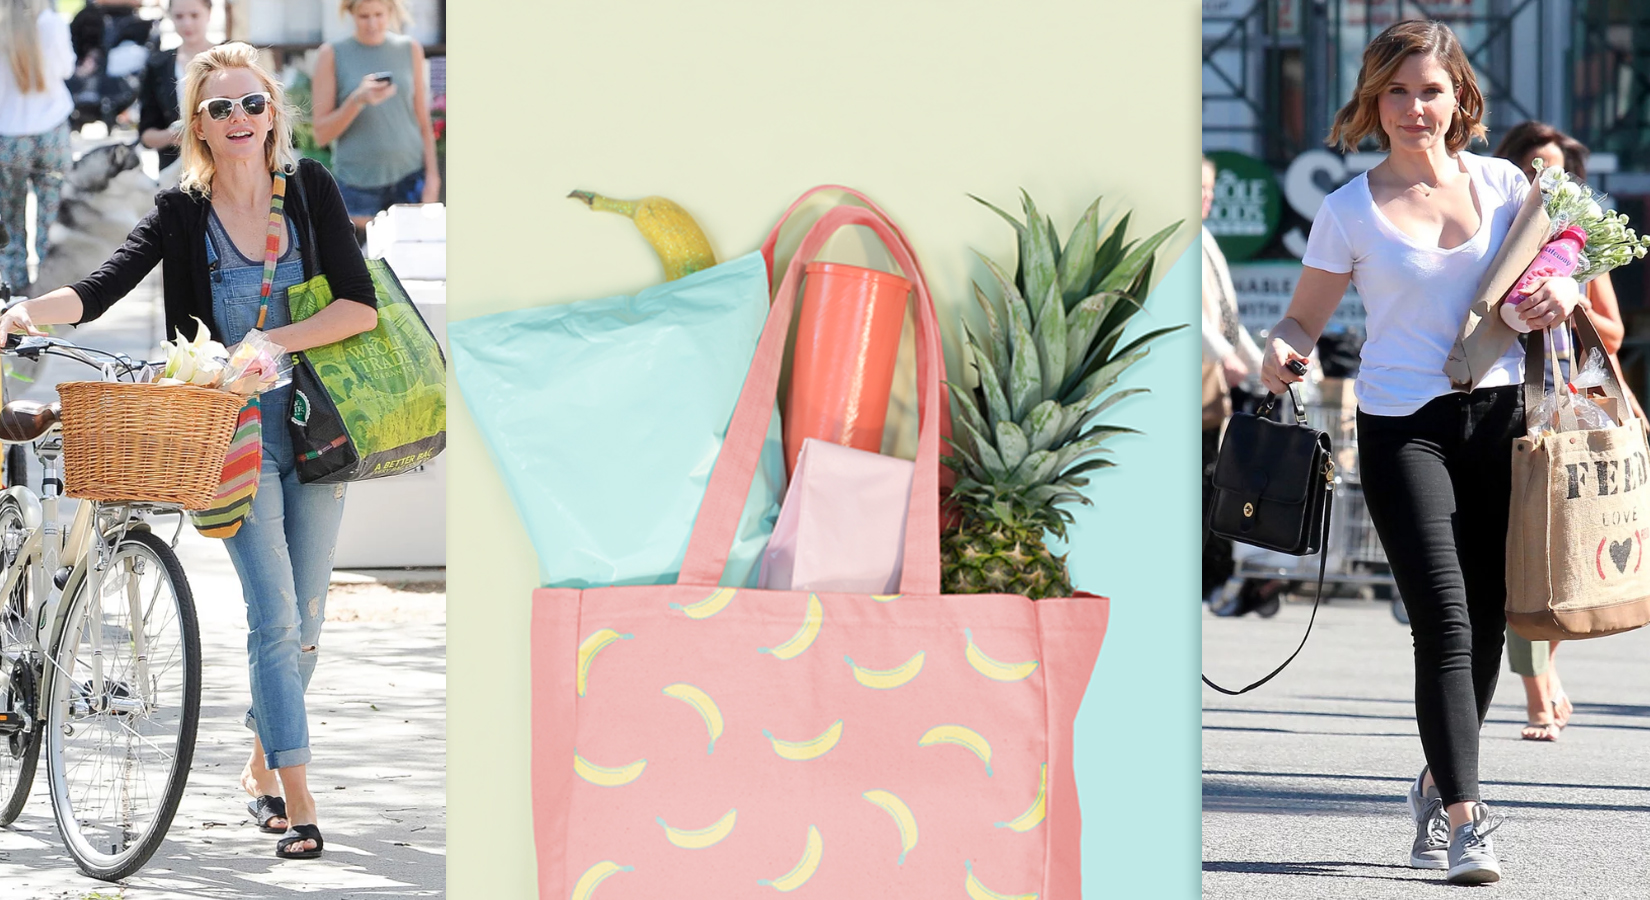 Plastic Bags to Be Banned in New York Means One Thing – Time To Buy Reusable Totes!